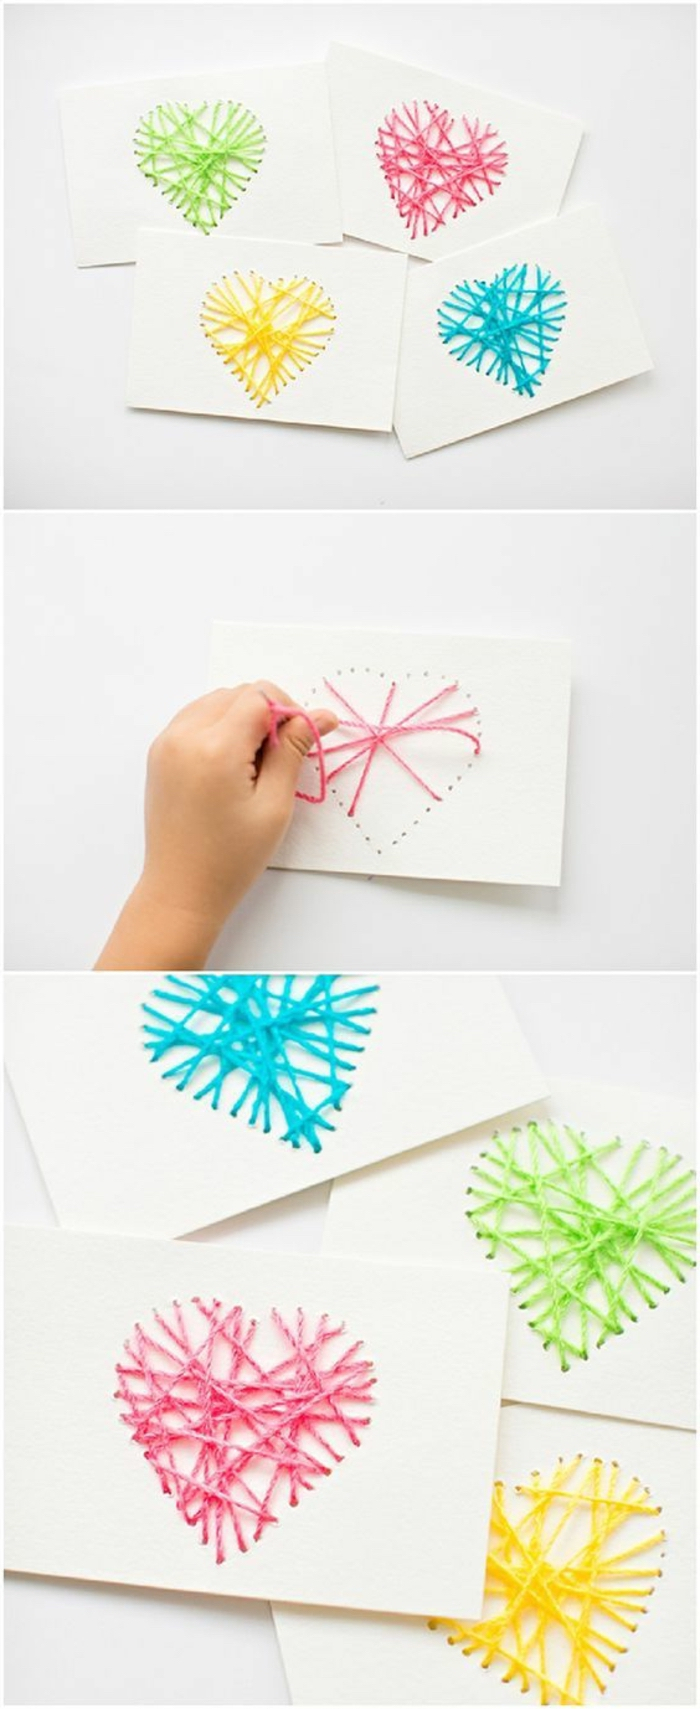 Simple and Cool Crafts to Do with Paper